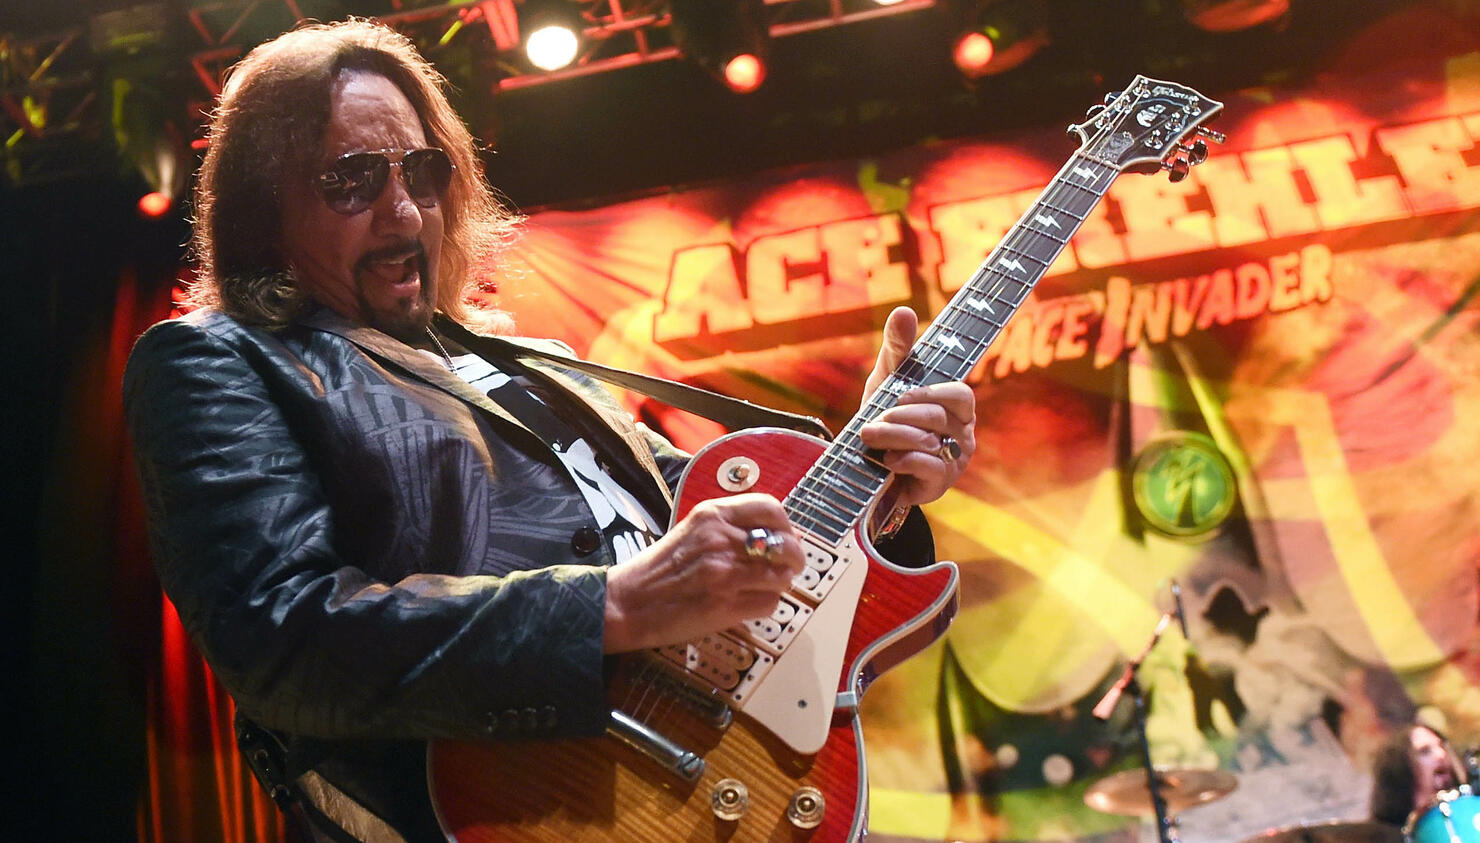 Ace Frehley And Lita Ford In Concert At Brooklyn Bowl Las Vegas